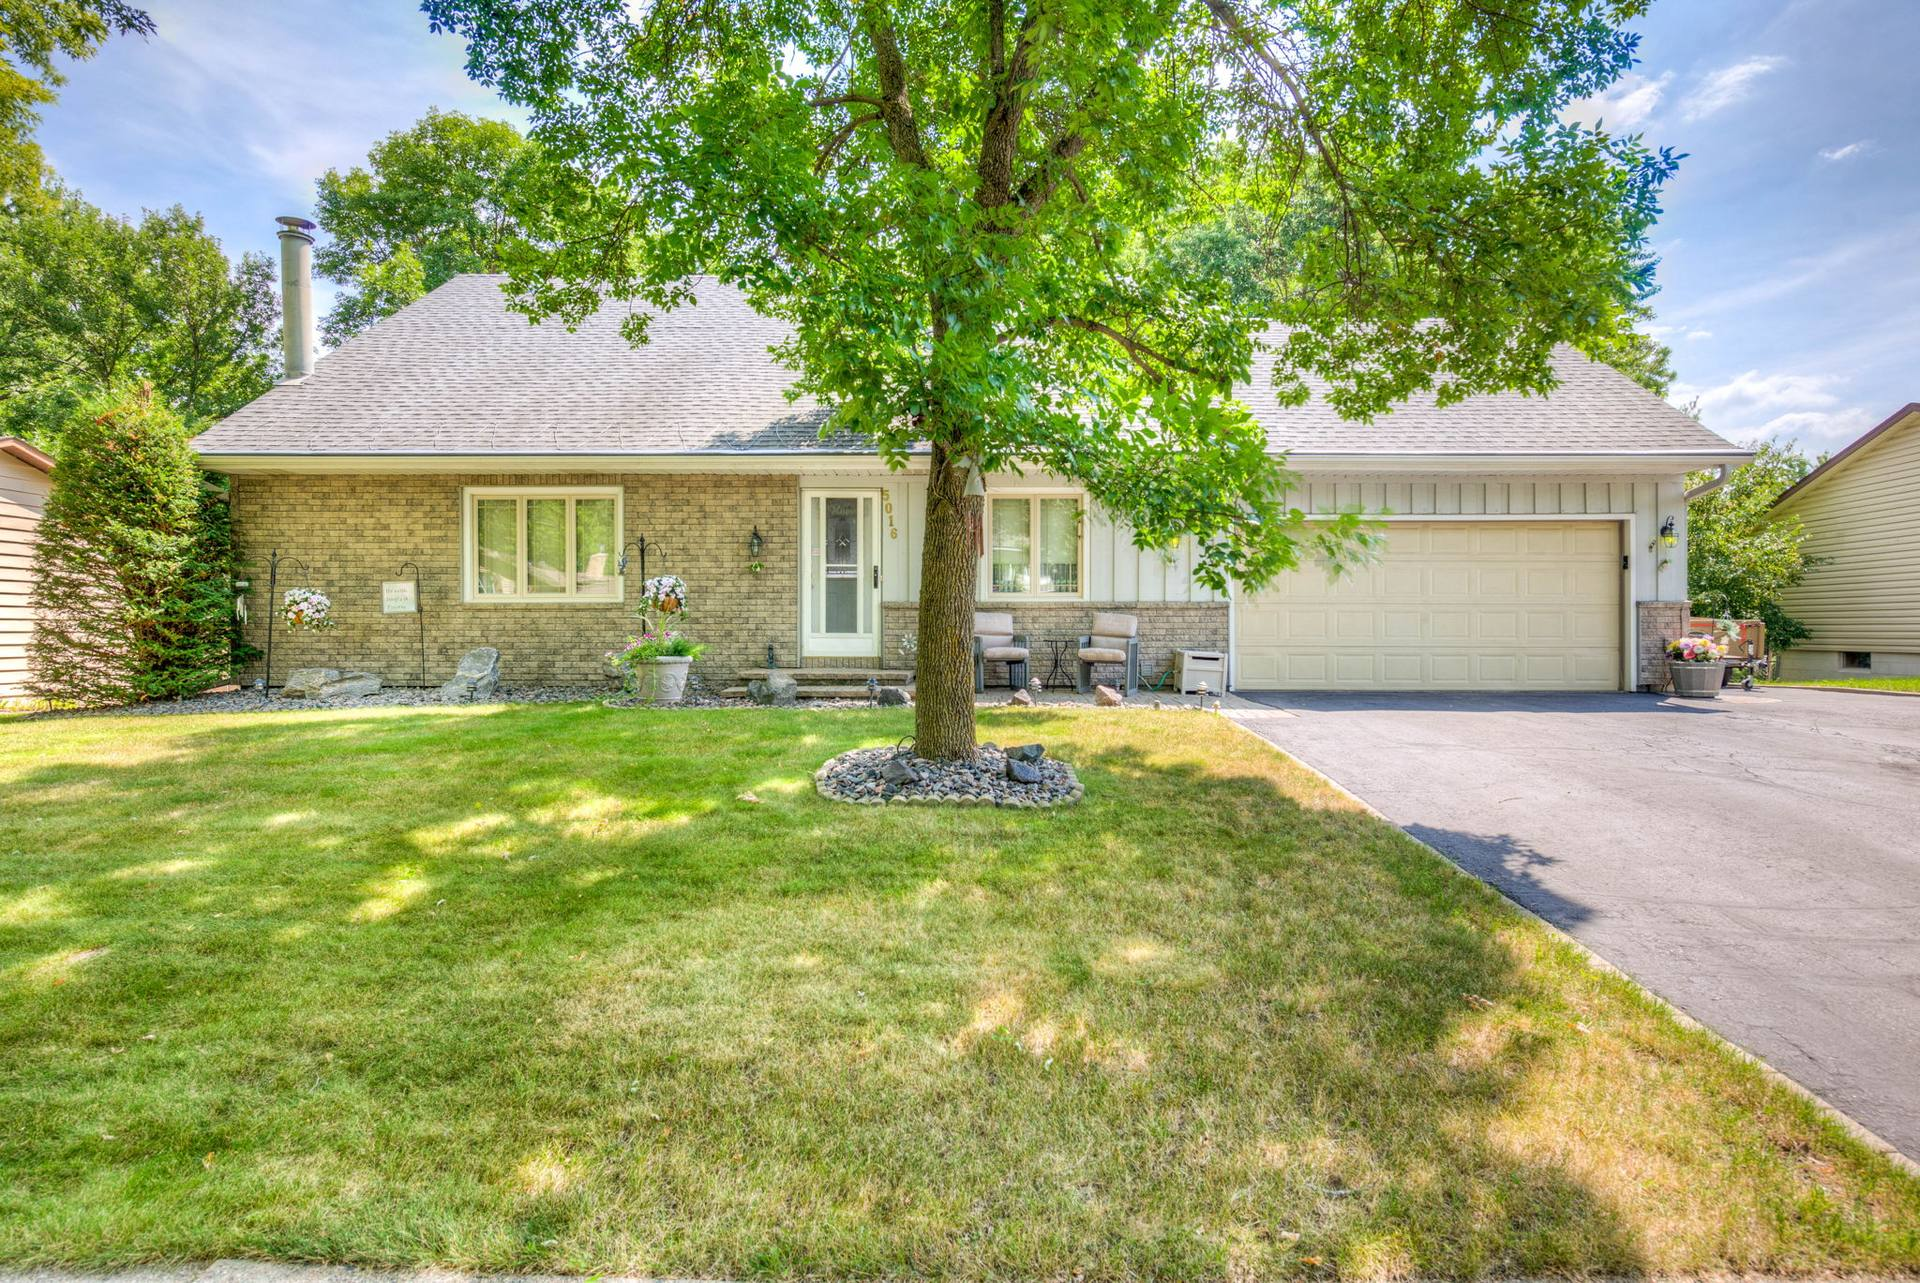 5016 142nd Path W, Apple Valley, MN 55124, US